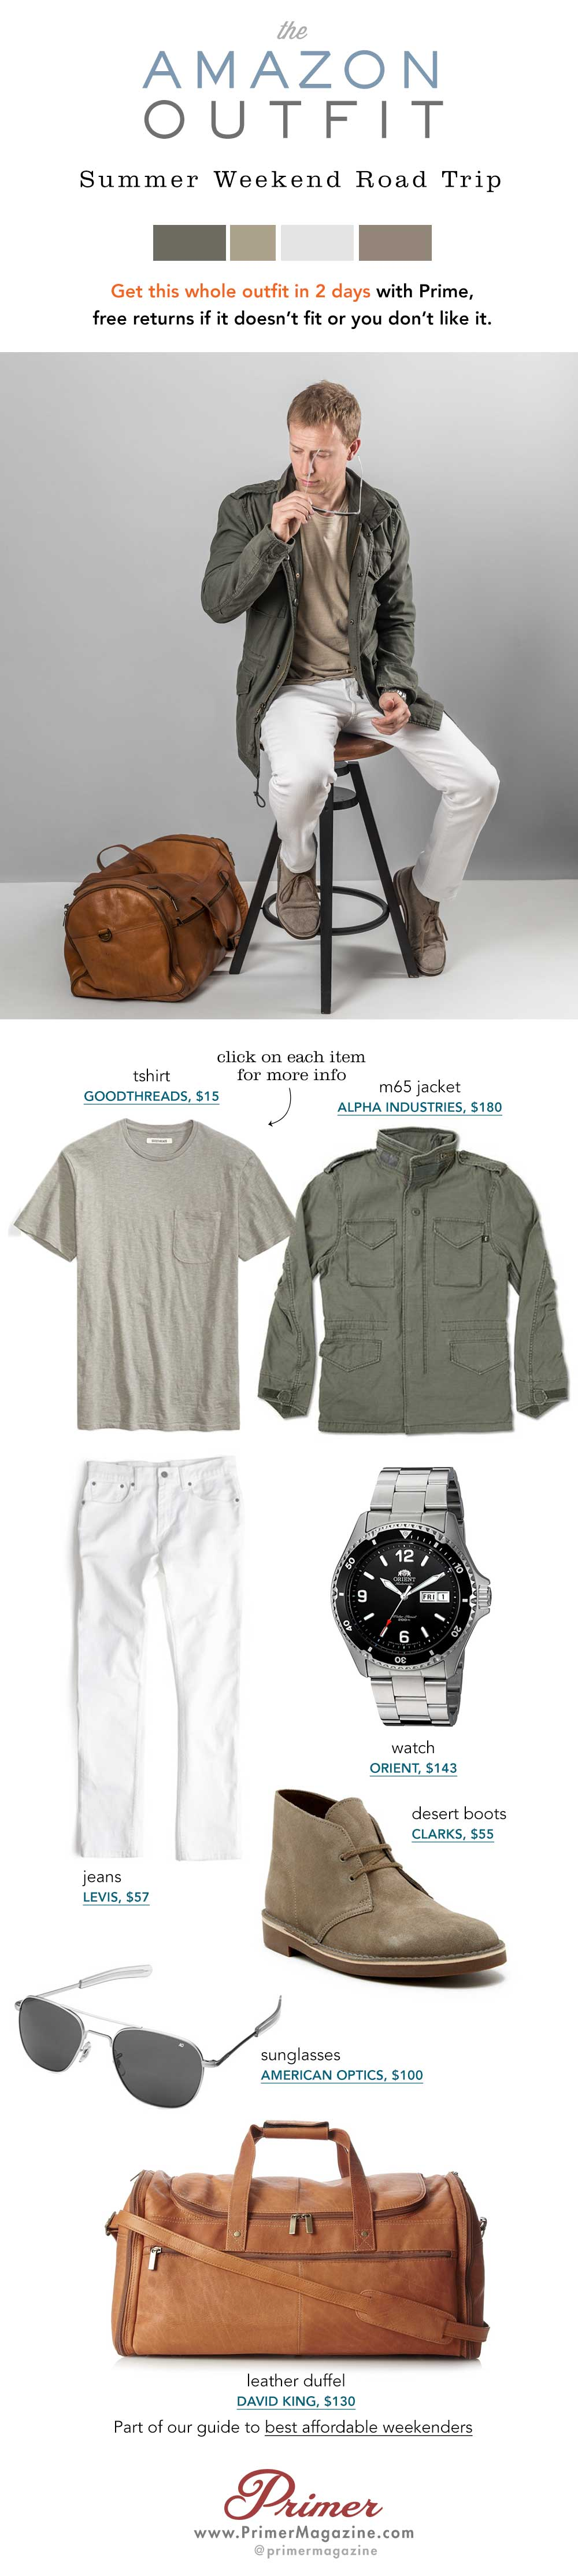 Summer outfit inspiration with green jacket, tan tshirt and white jeans